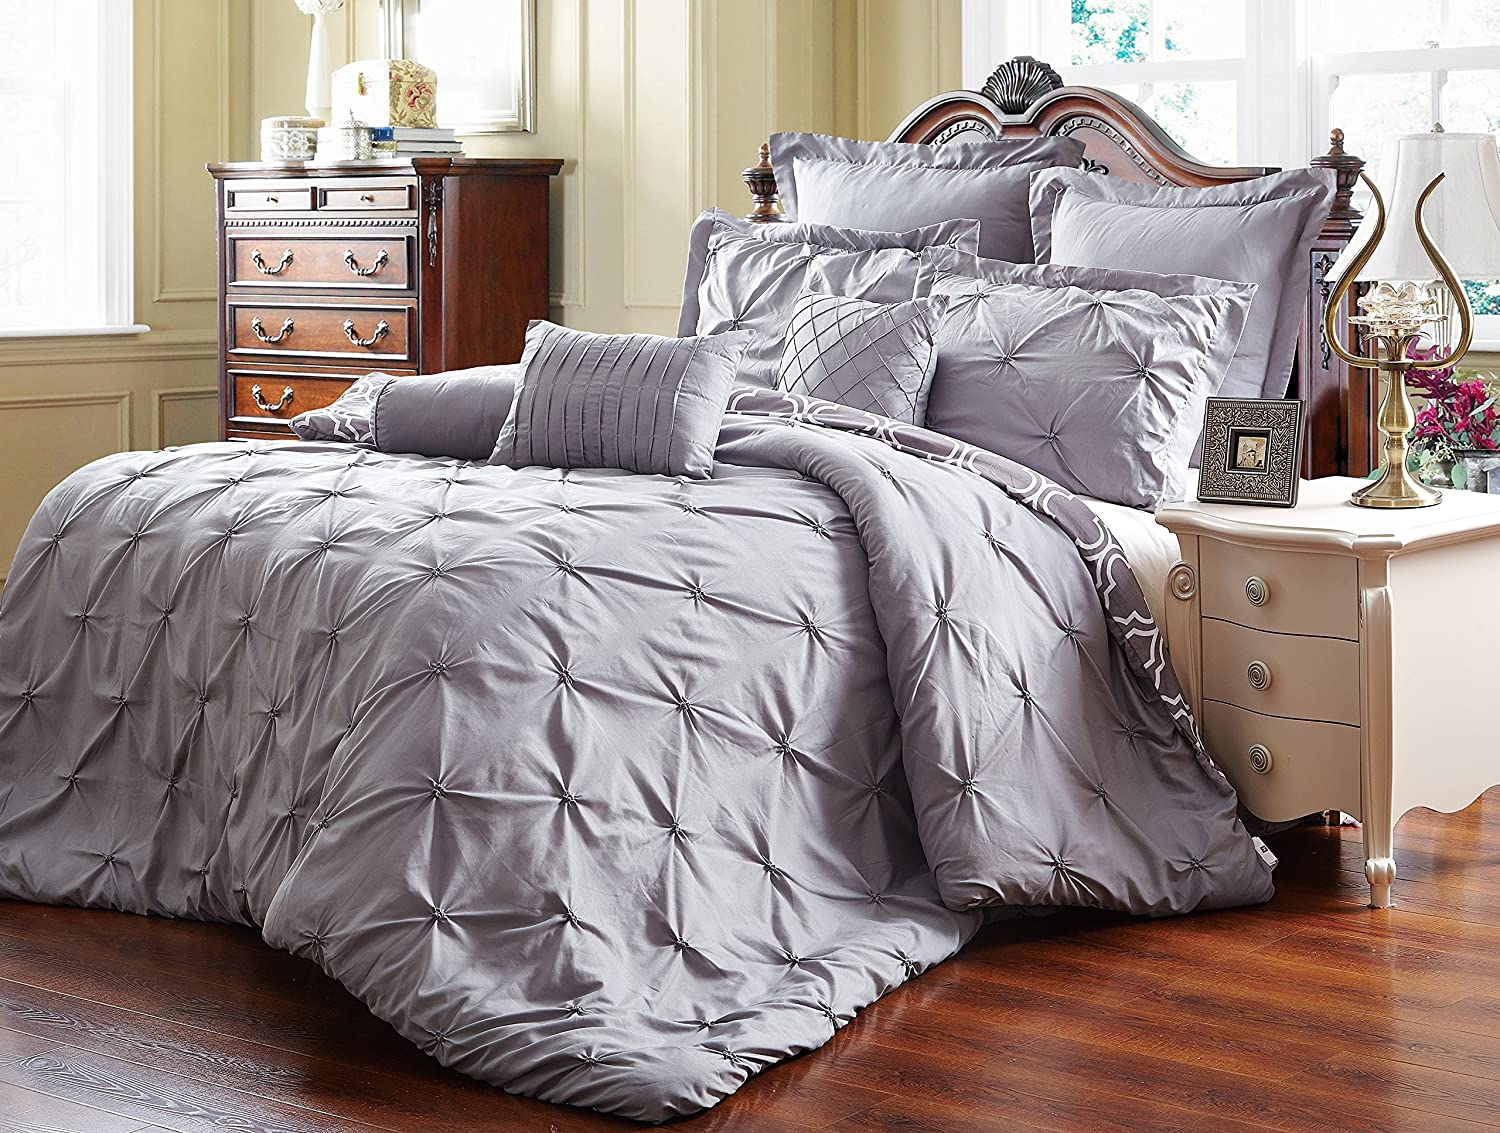 bed in bedding joss b damask and comforter extraordinary sets for bedroom coral rustic yellow walmart ideas main decoration size king twin grey stunning kohls